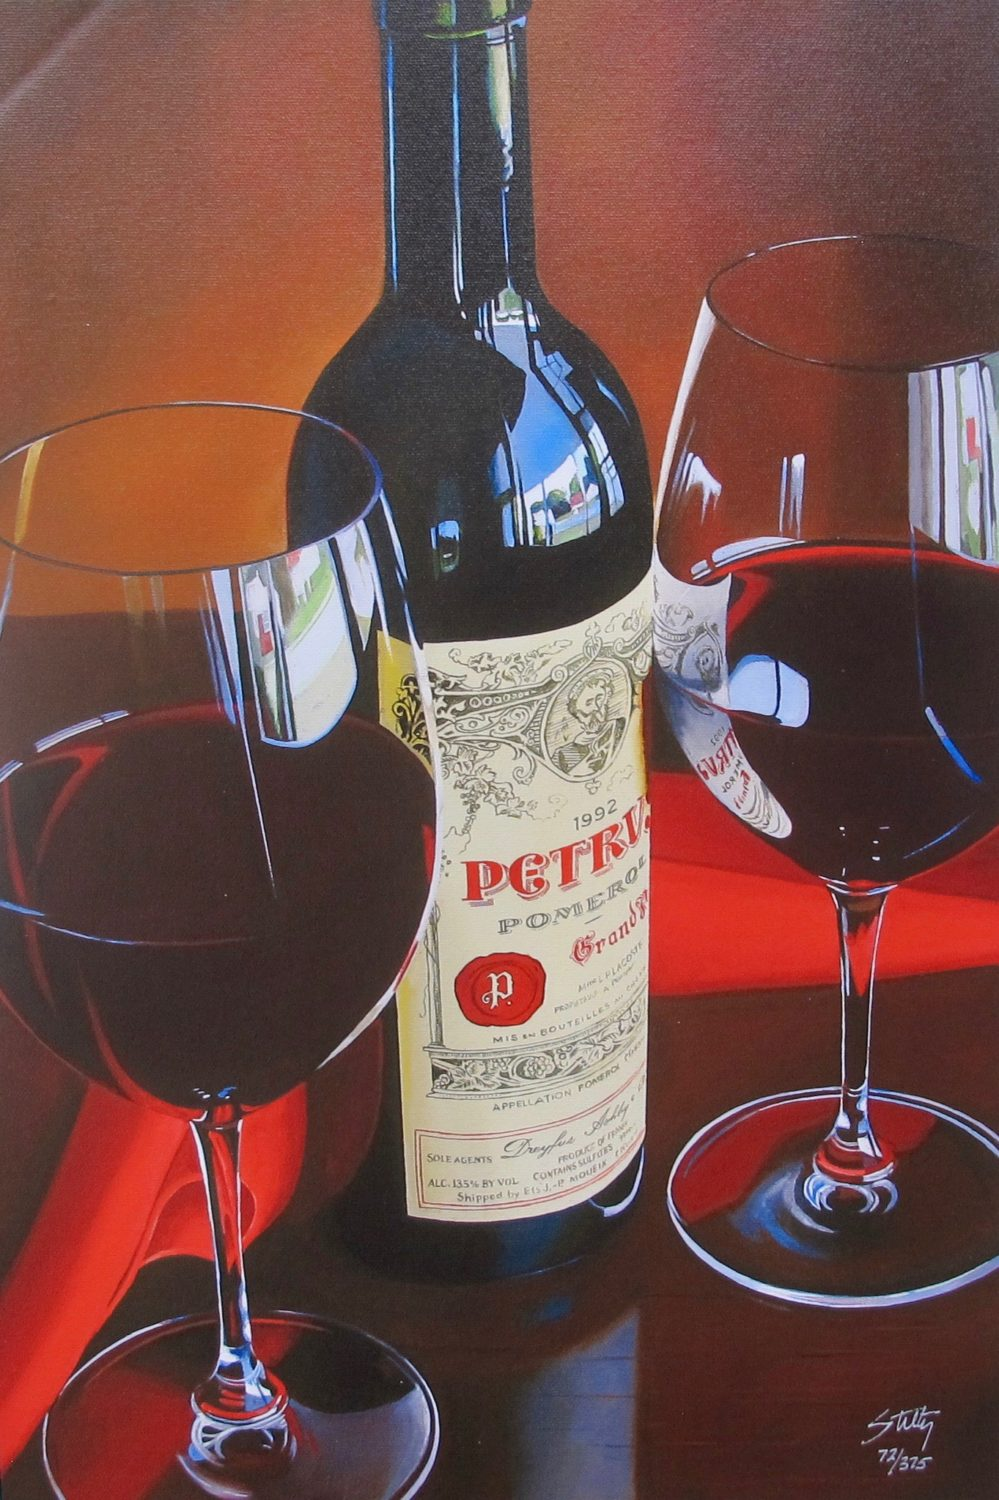 THOMAS STILTZ Petrus Hand Signed Limited Edition Giclee on Canvas Wine